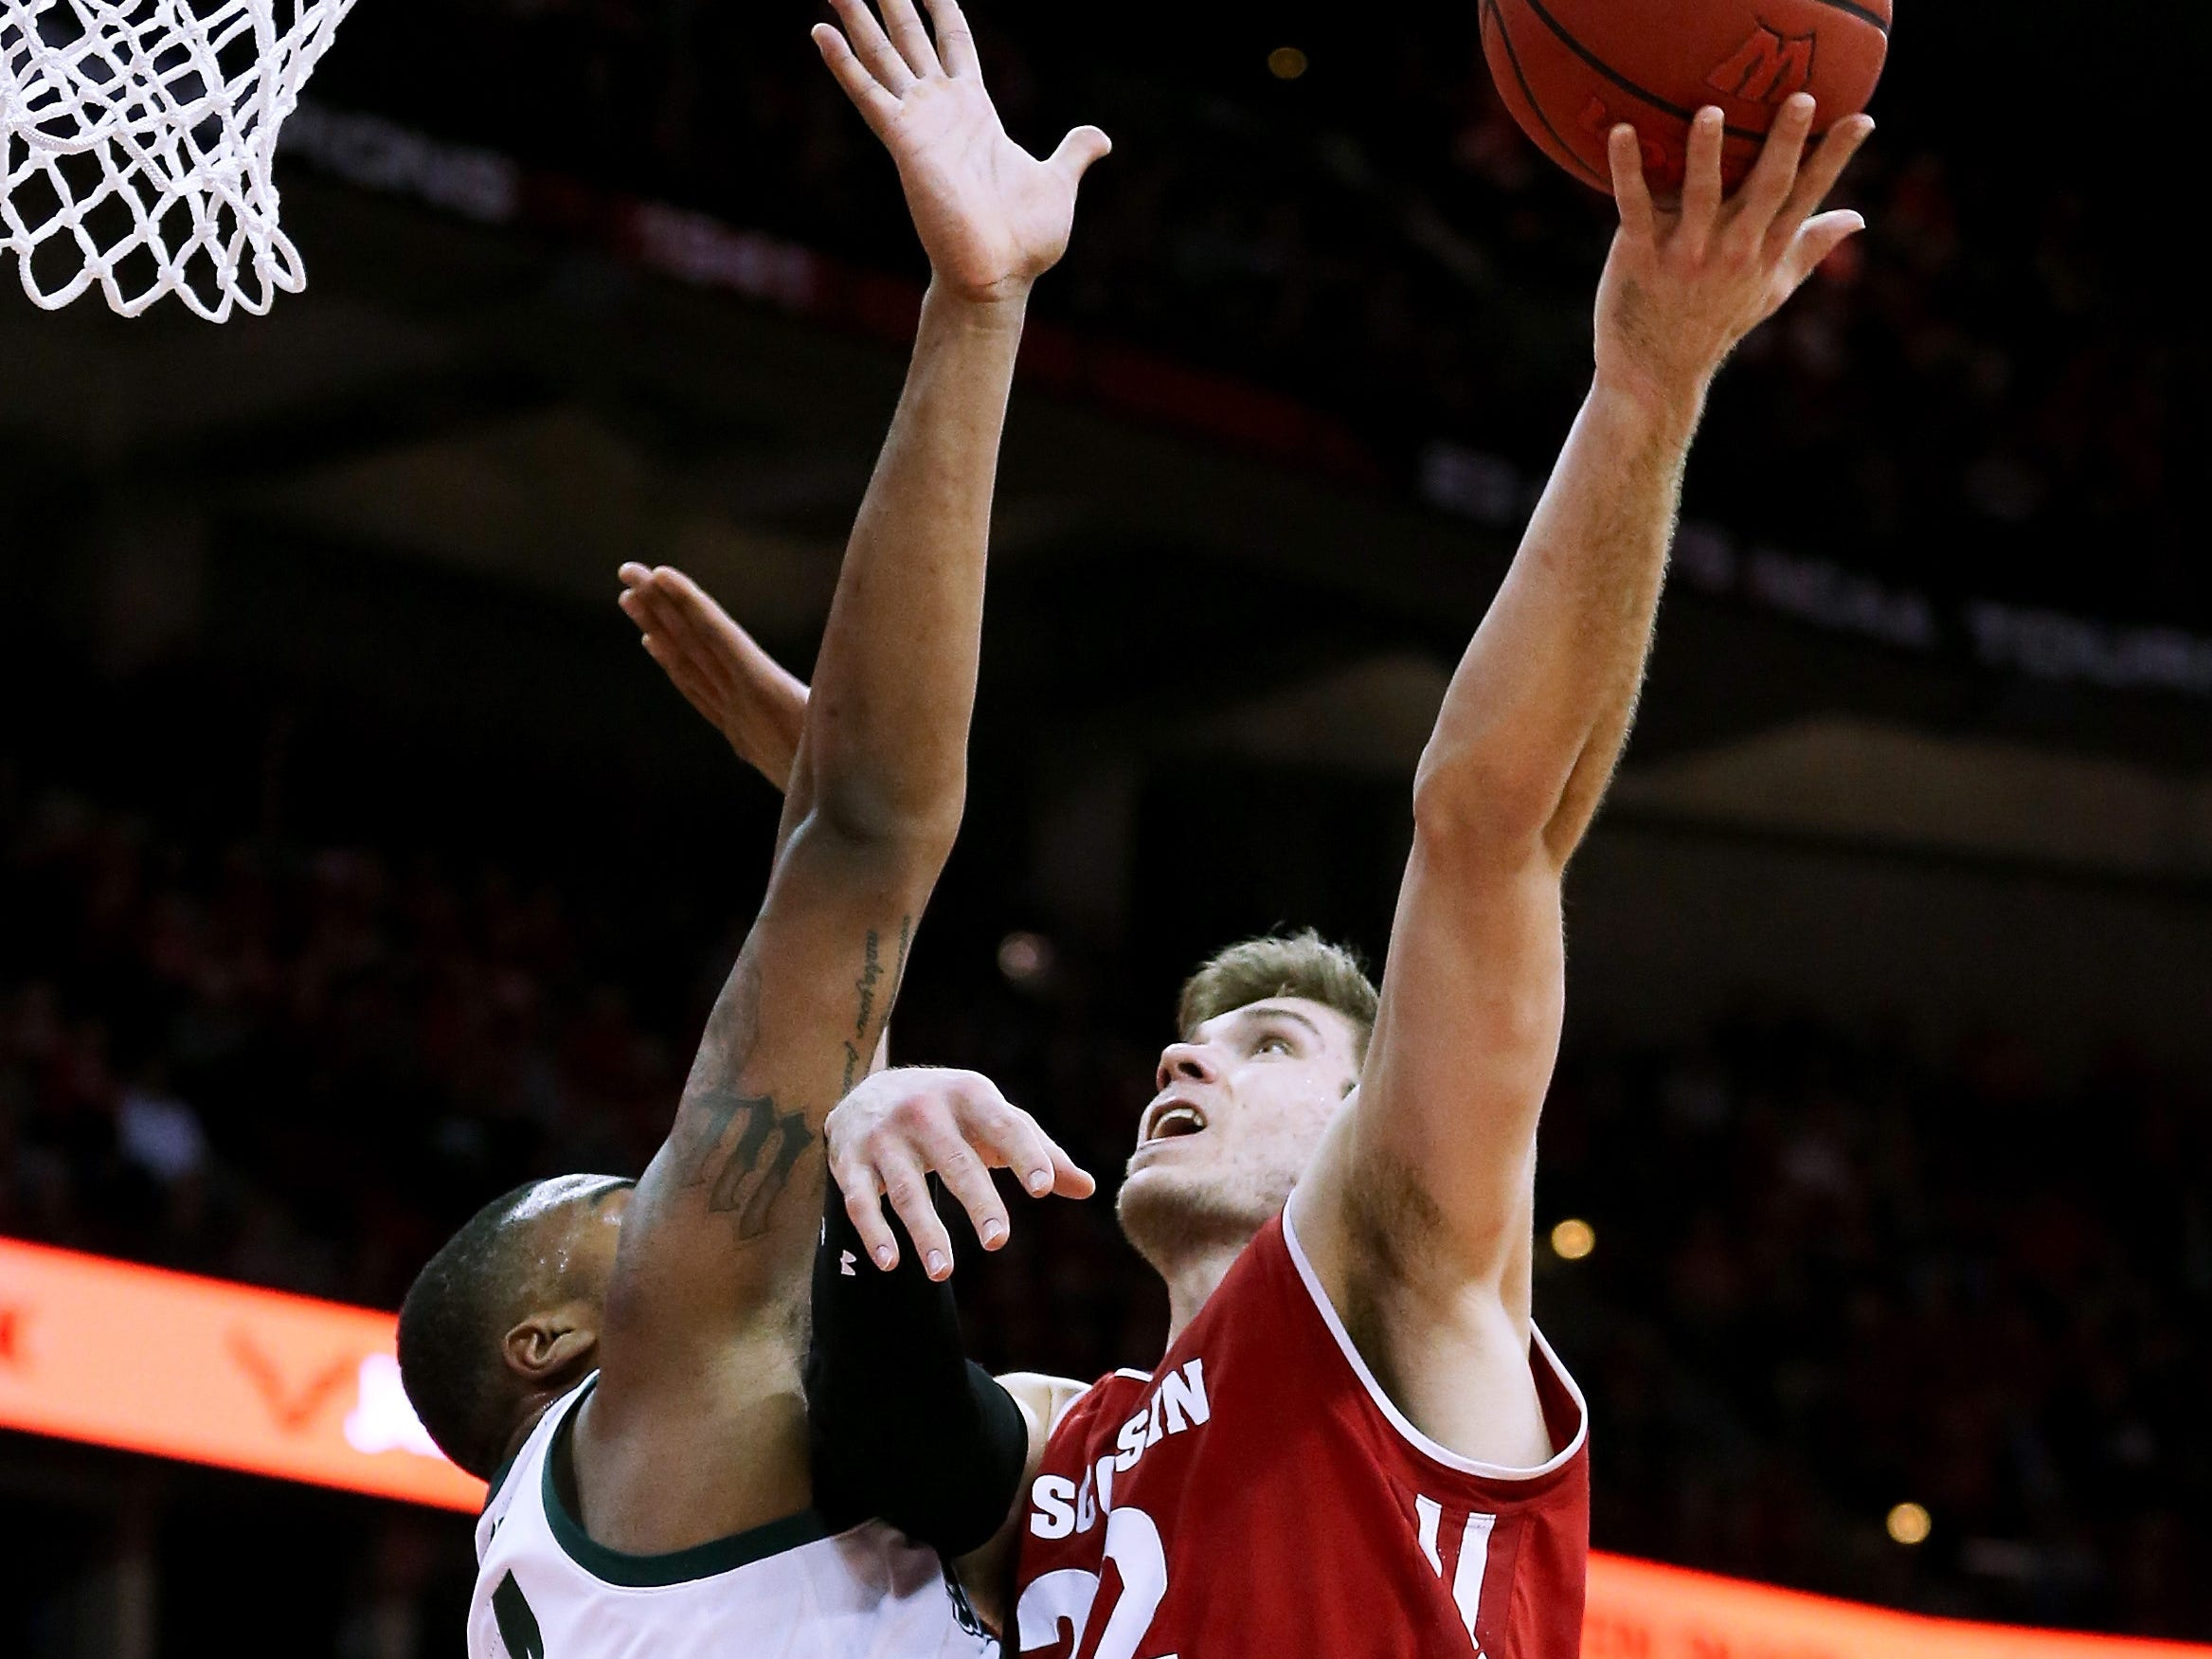 Ethan Happ #22 of the Wisconsin Badgers attempts a shot while being guarded by Nick Ward #44 of the Michigan State Spartans in the first half at the Kohl Center on February 12, 2019 in Madison, Wisconsin.